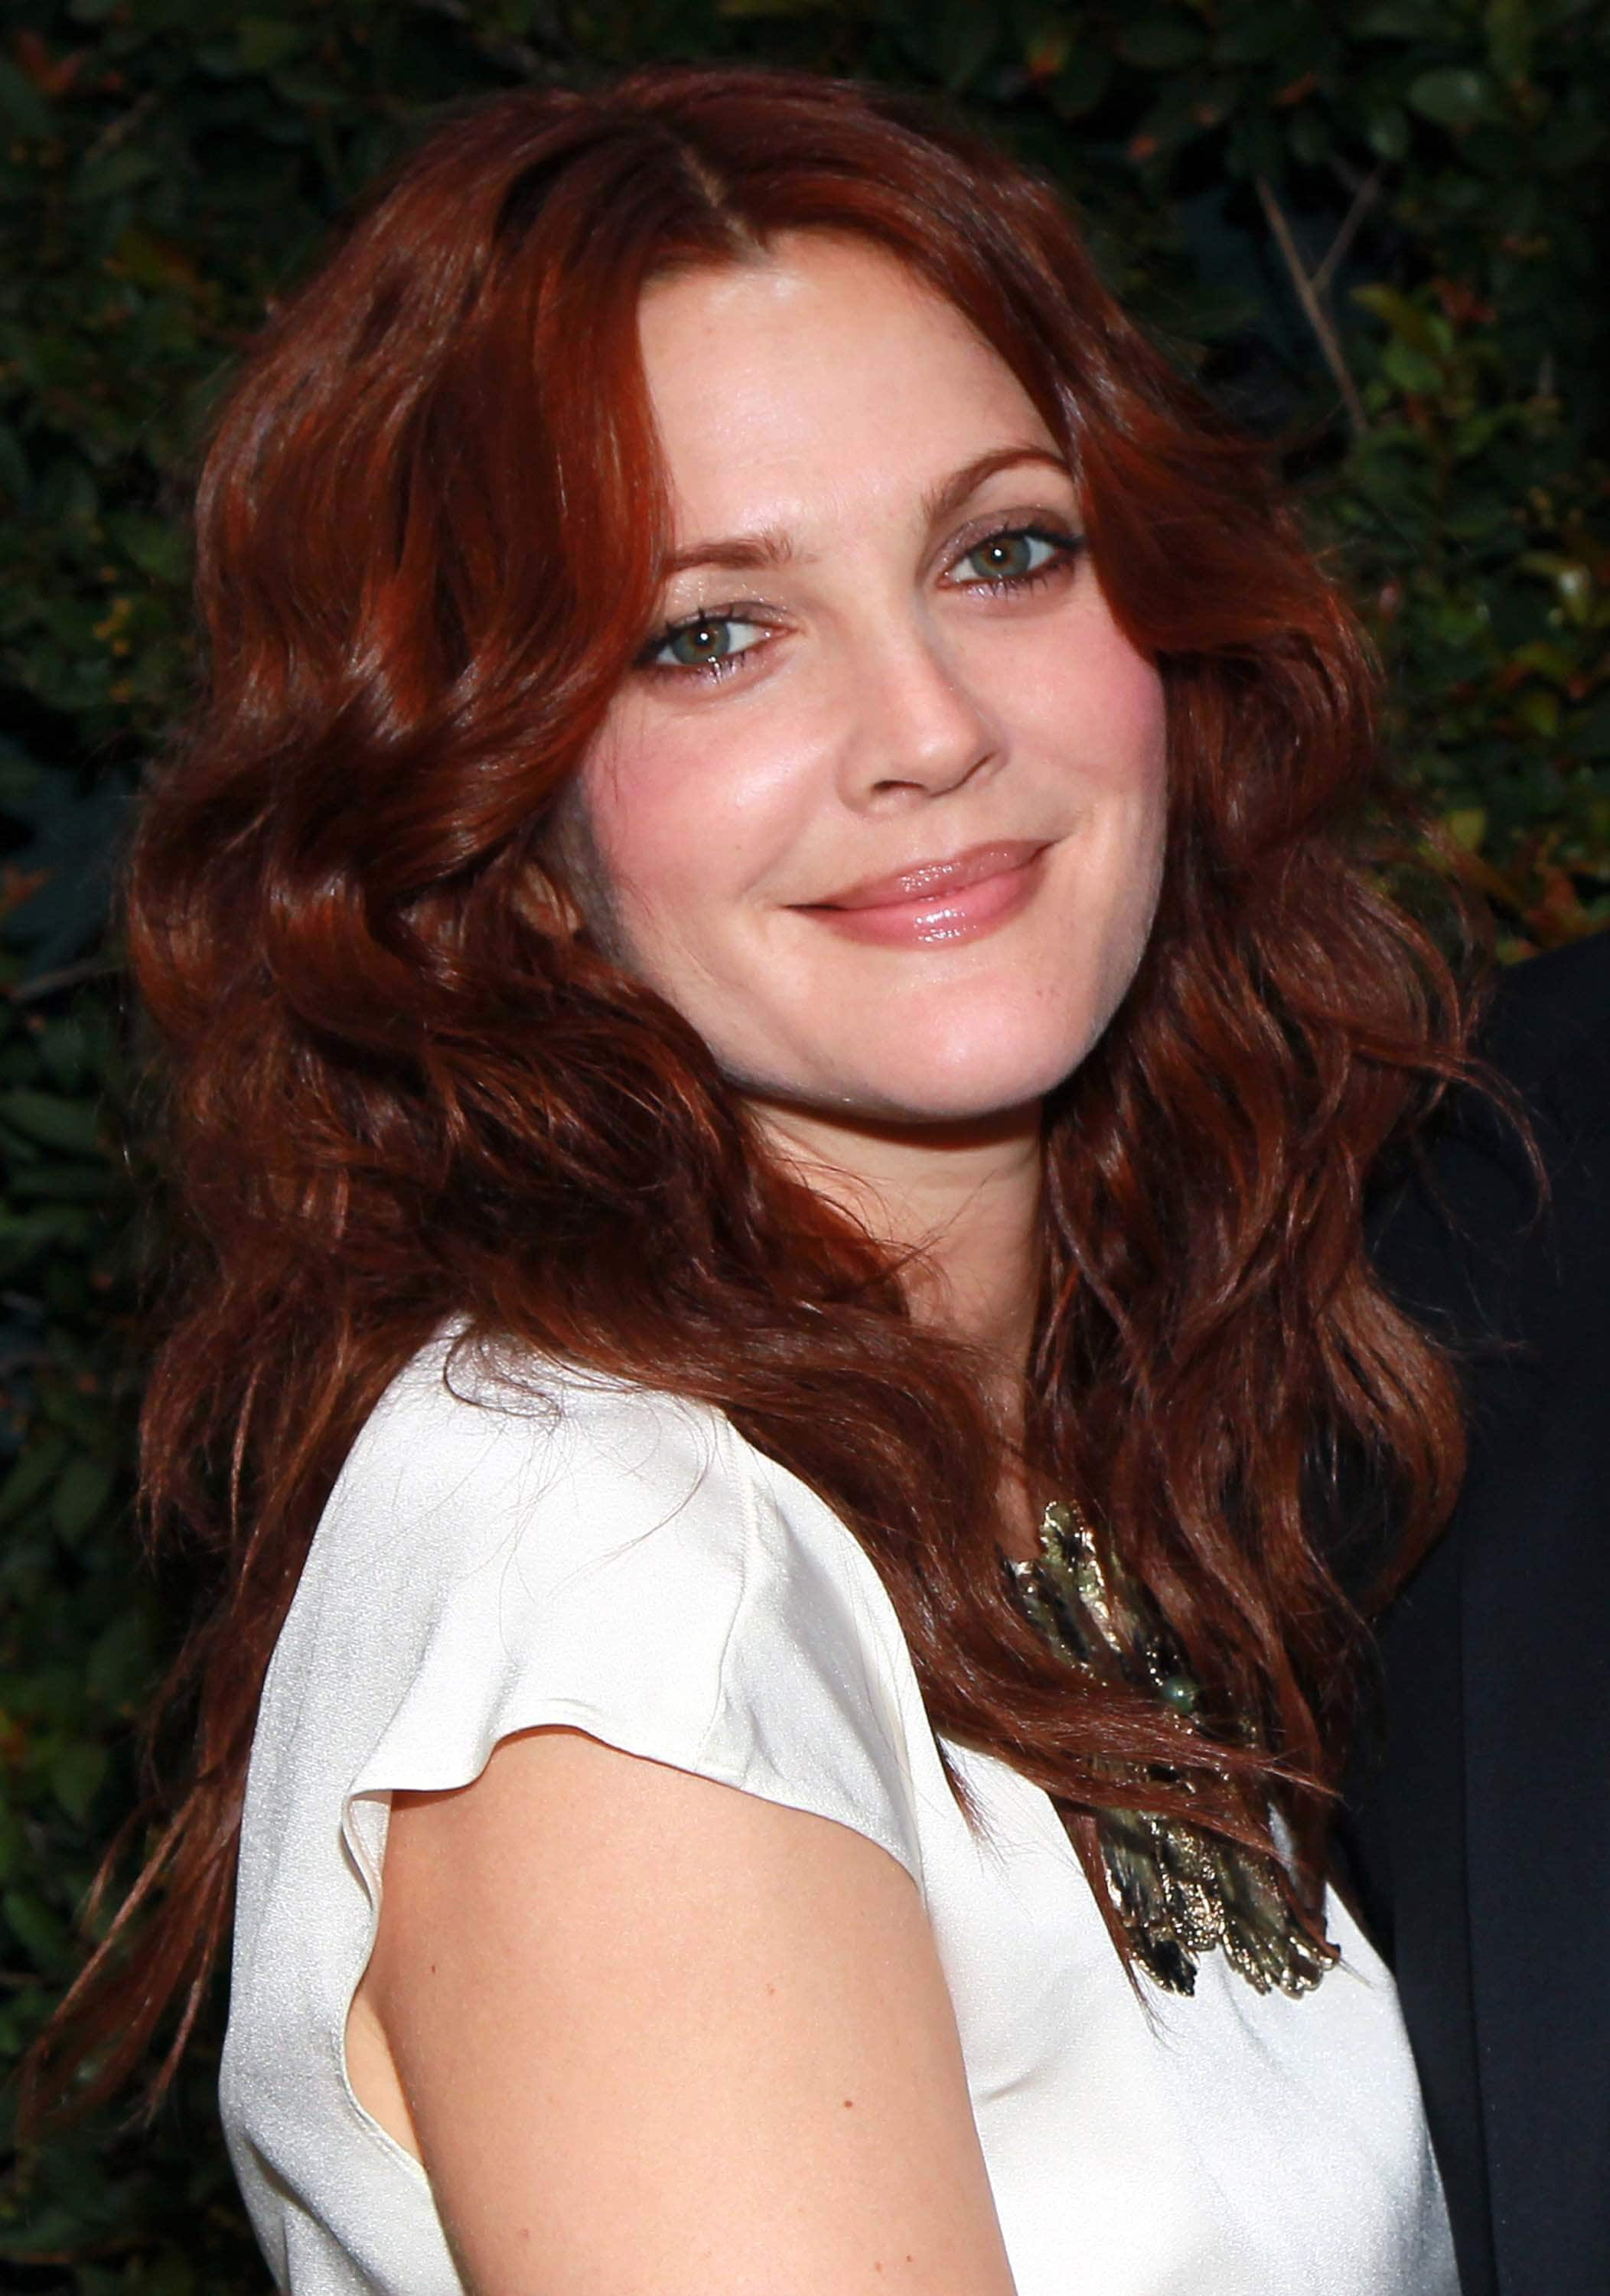 drew barrymore with long dark red hair in a curly finish wearing white t-shirt